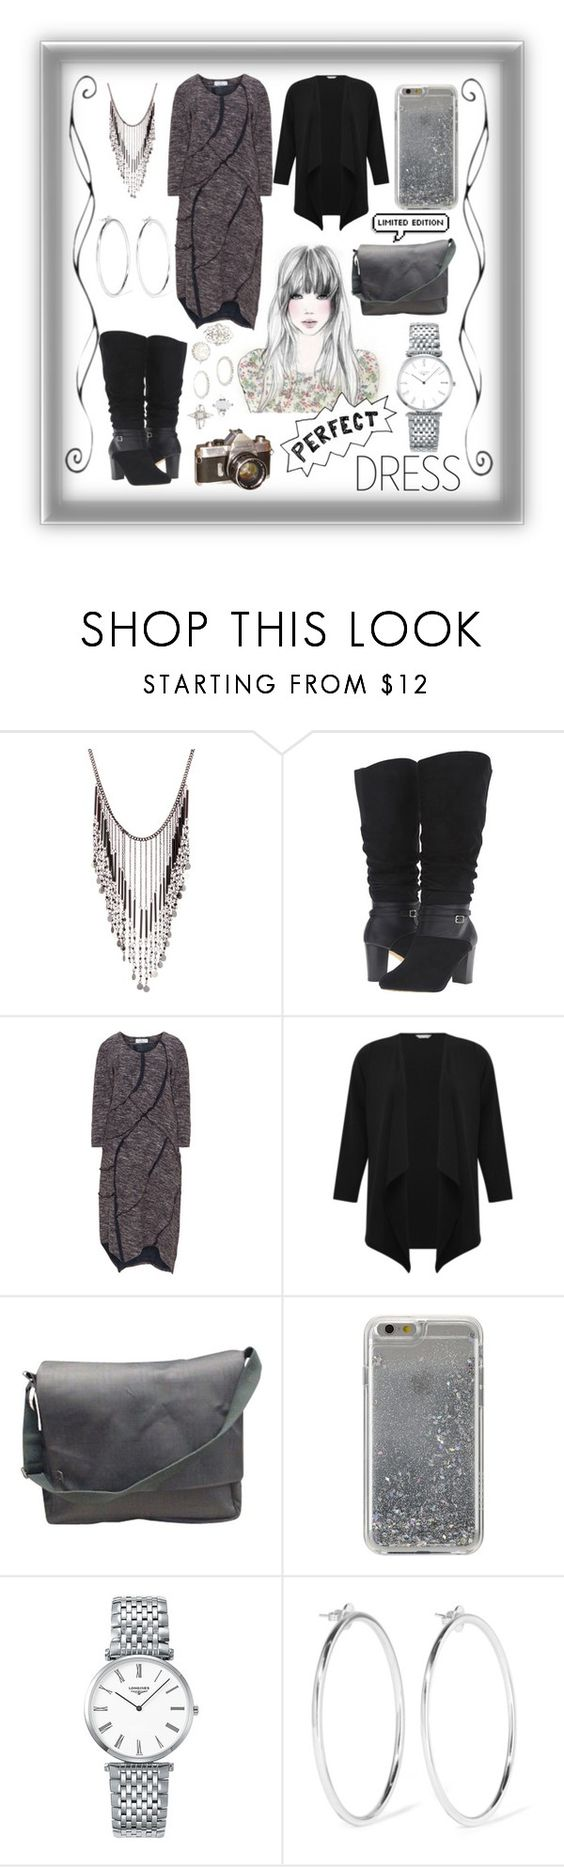 """""""Winter dress"""" by jumainakmir ❤ liked on Polyvore featuring GE, Stephan & Co., Bella-Vita, Inca, M&Co, Burberry, Agent 18, Longines, Jennifer Fisher and Charlotte Russe"""